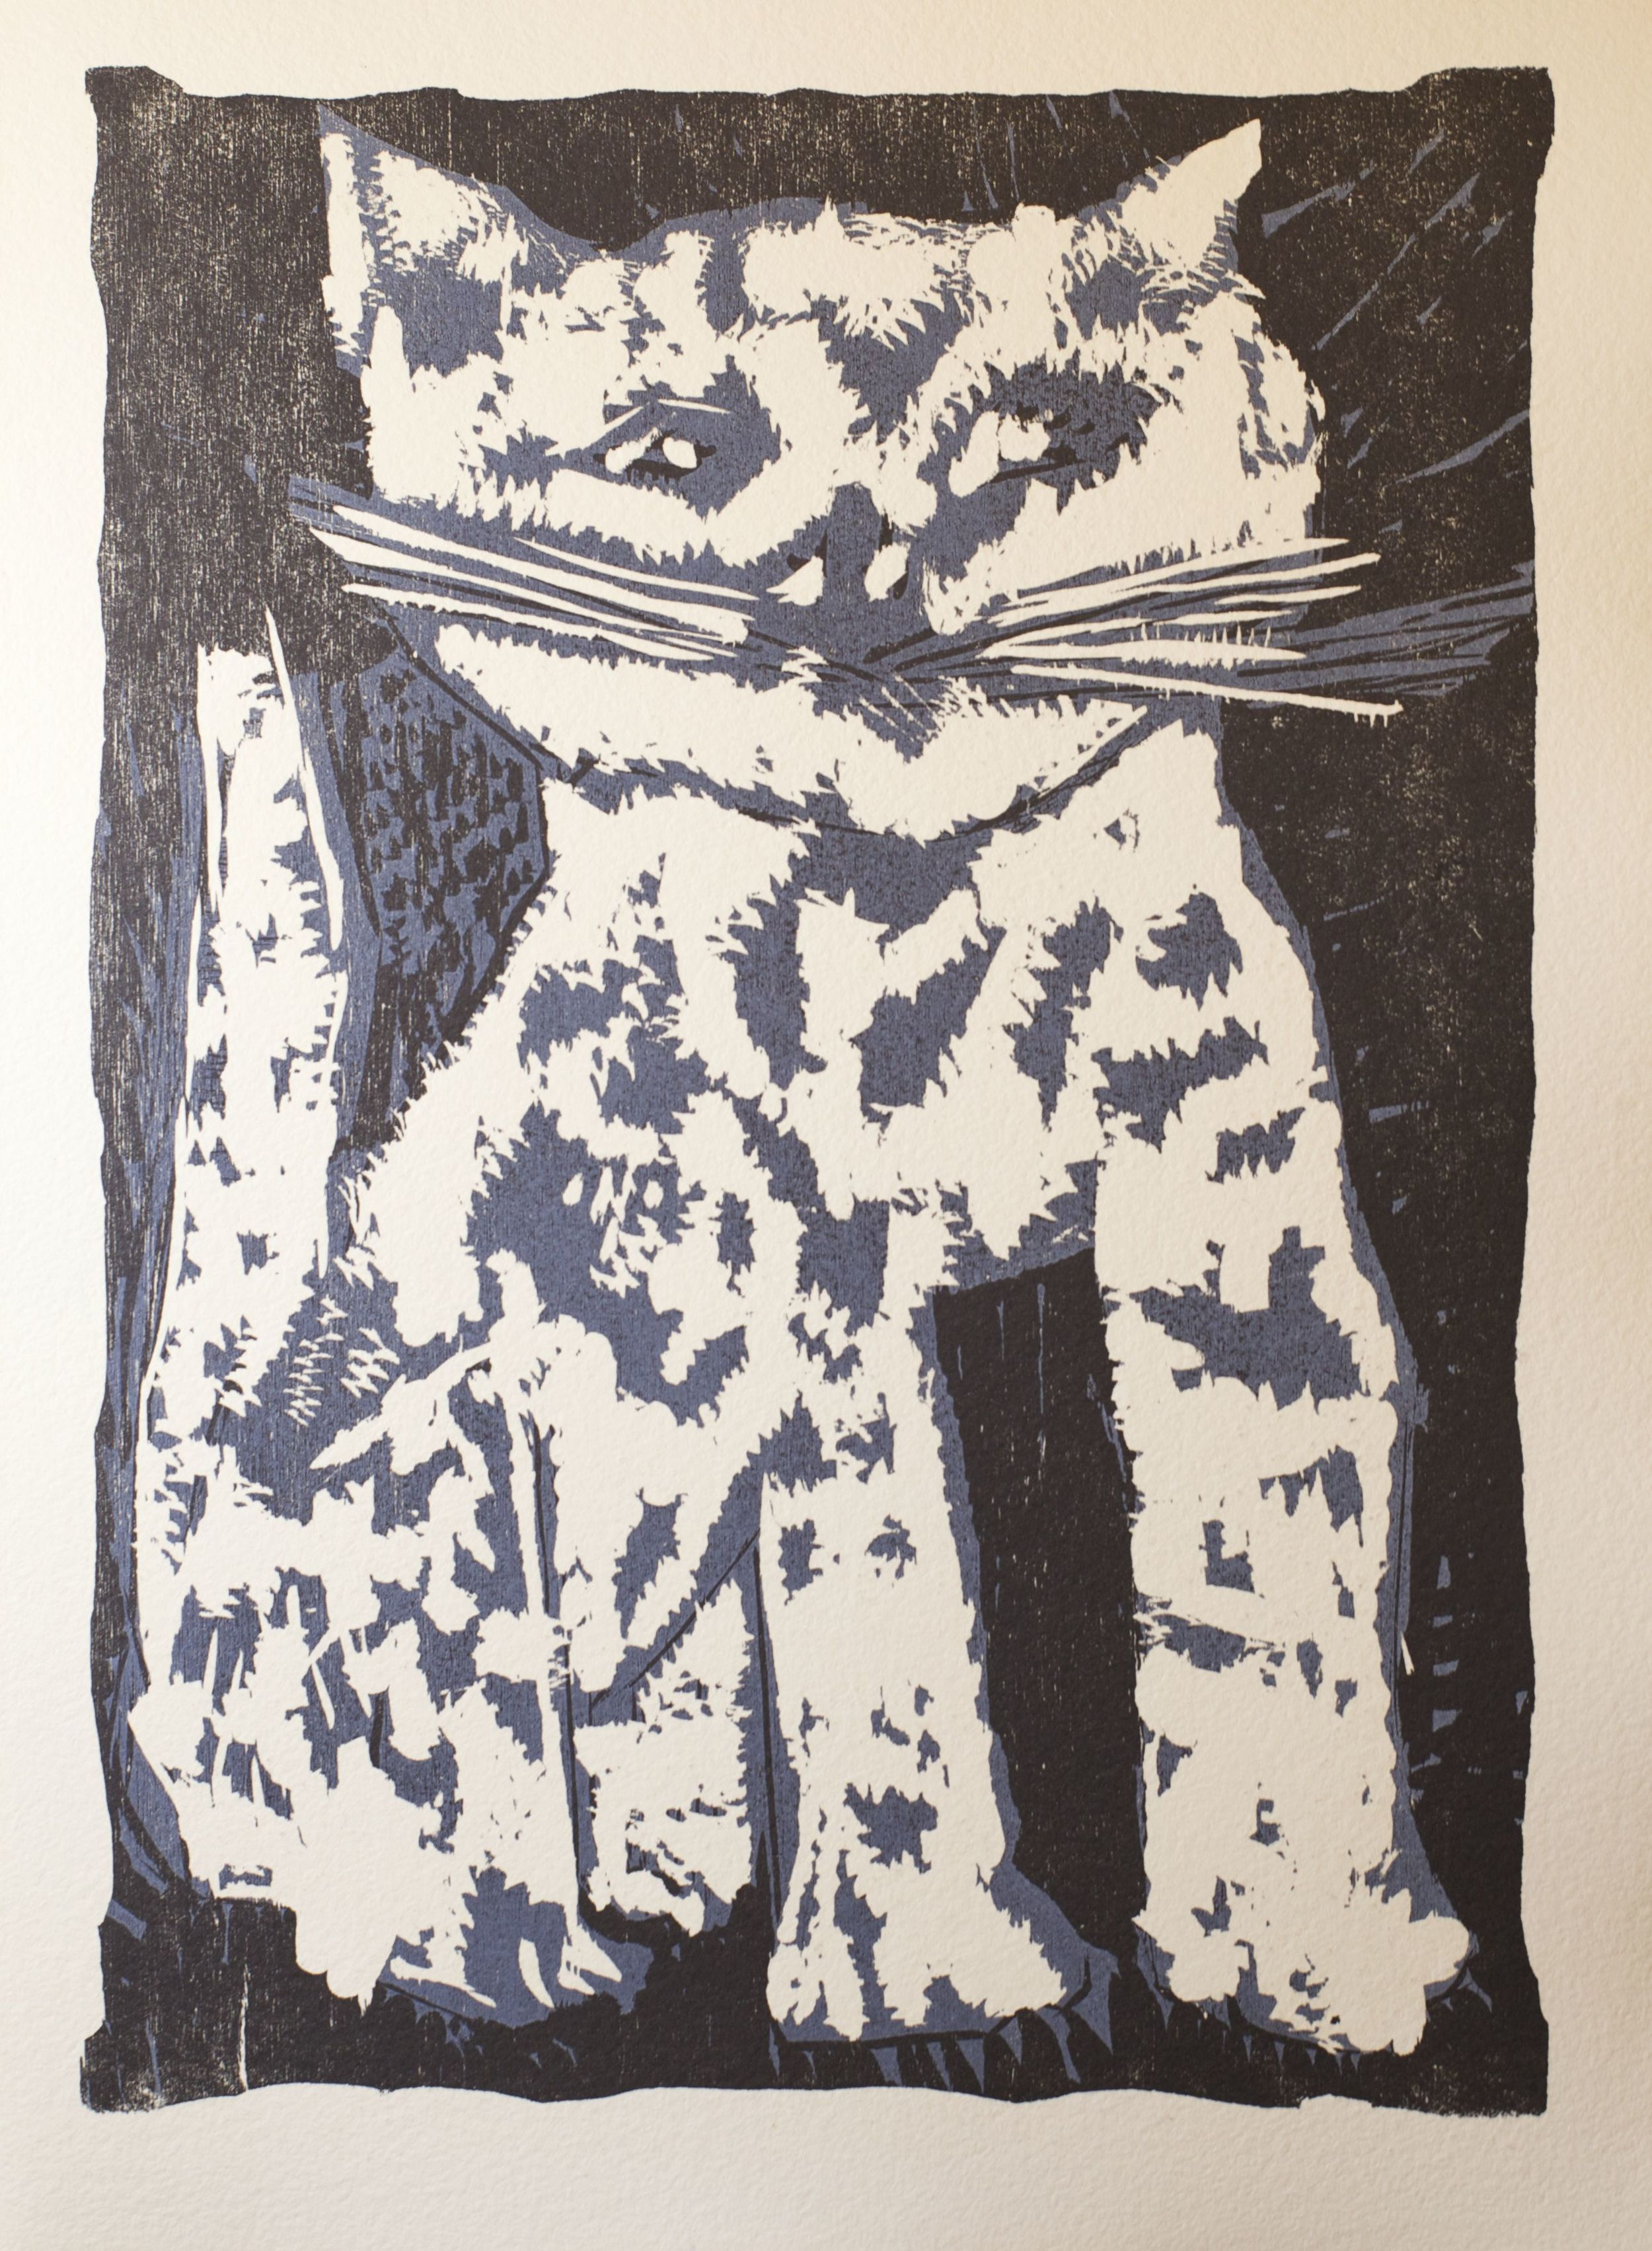 The Cat (Le Chat)